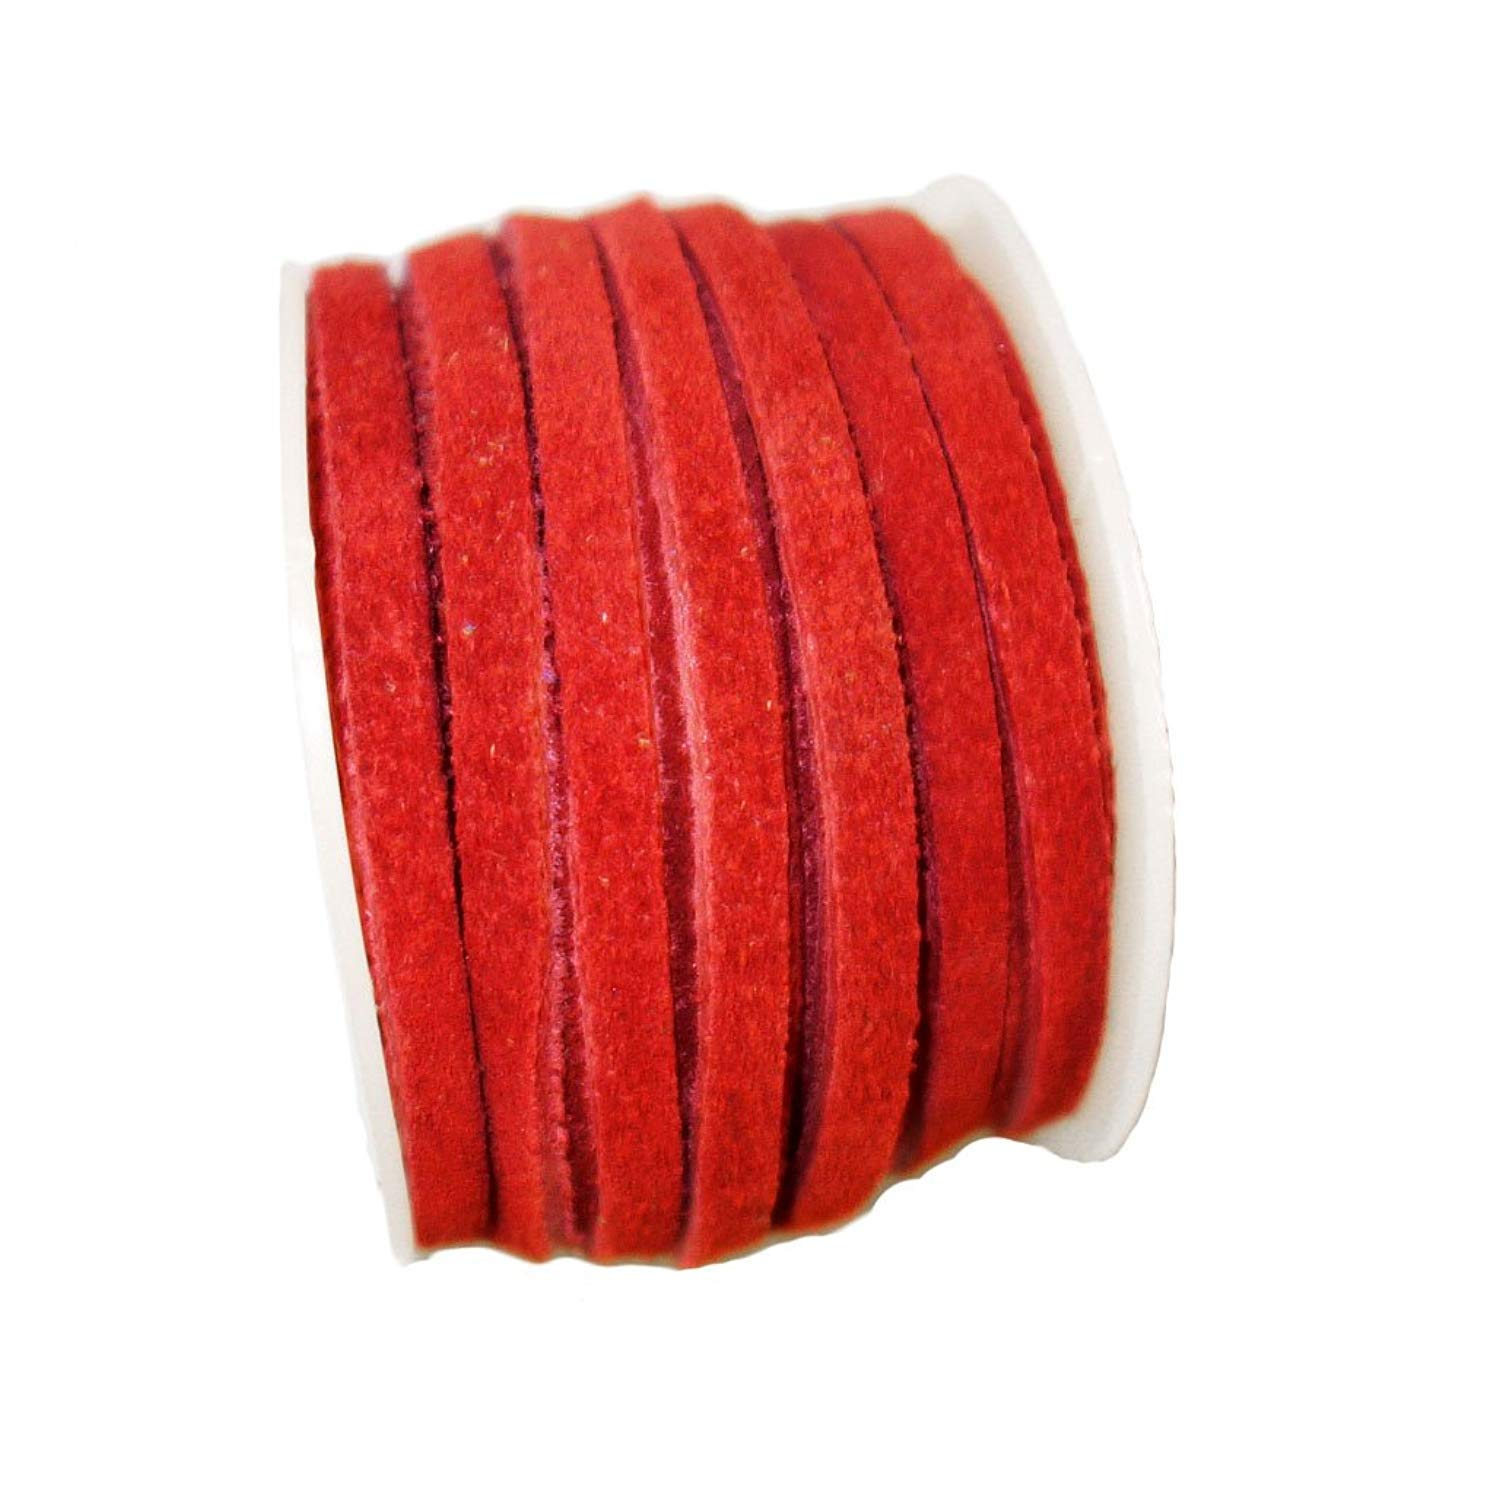 Genuine Suede Flat Leather Lace Leather Cording for Jewelry /& Crafts 4mm Red 10 Meters 10.93 Yards